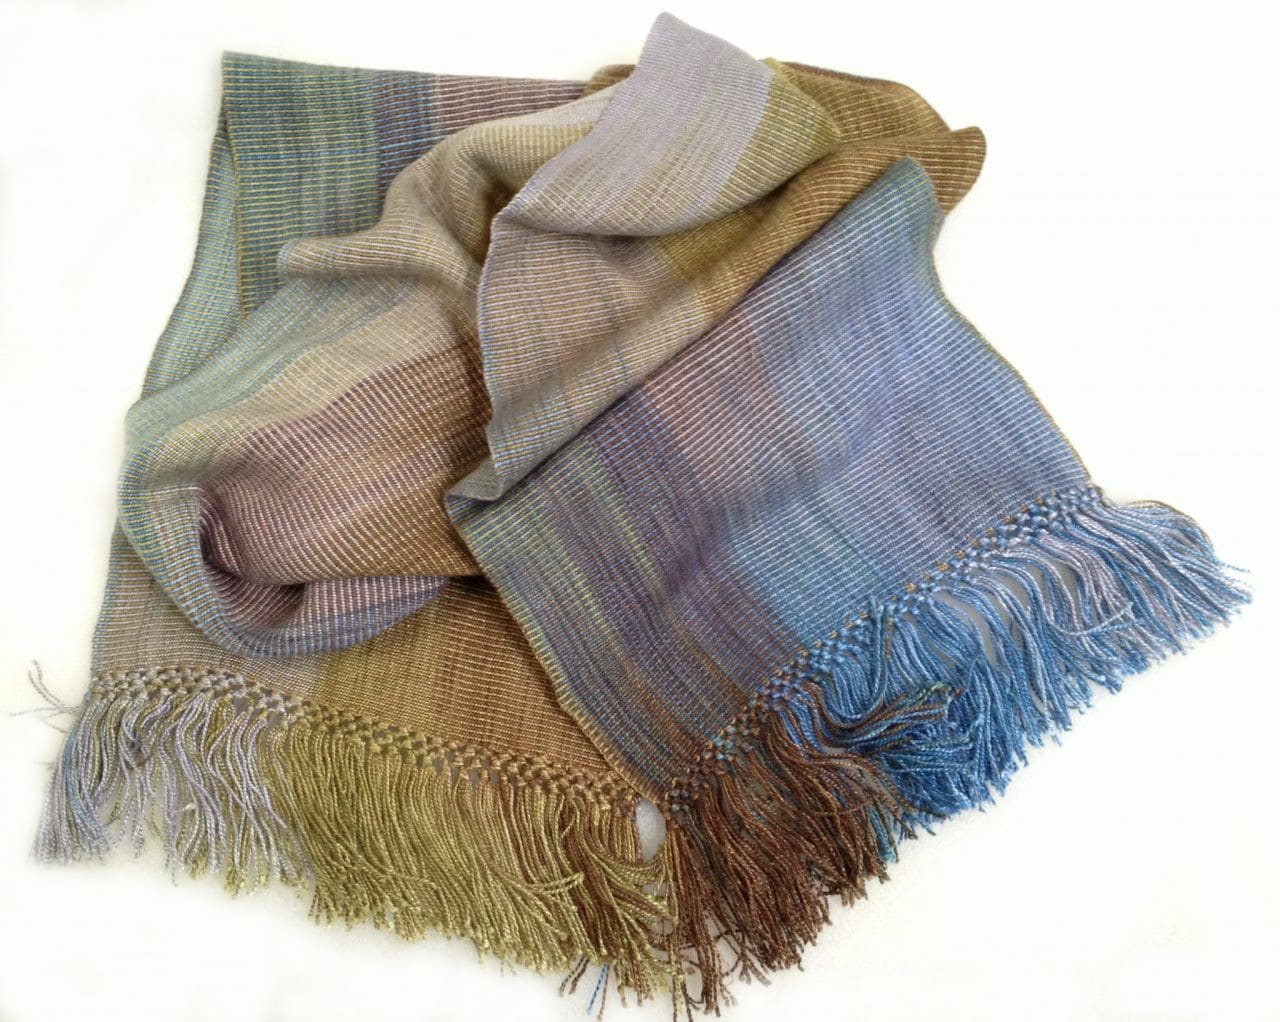 Blue, Olive, Gray, Brown - Lightweight Bamboo Handwoven Scarf 8 x 68